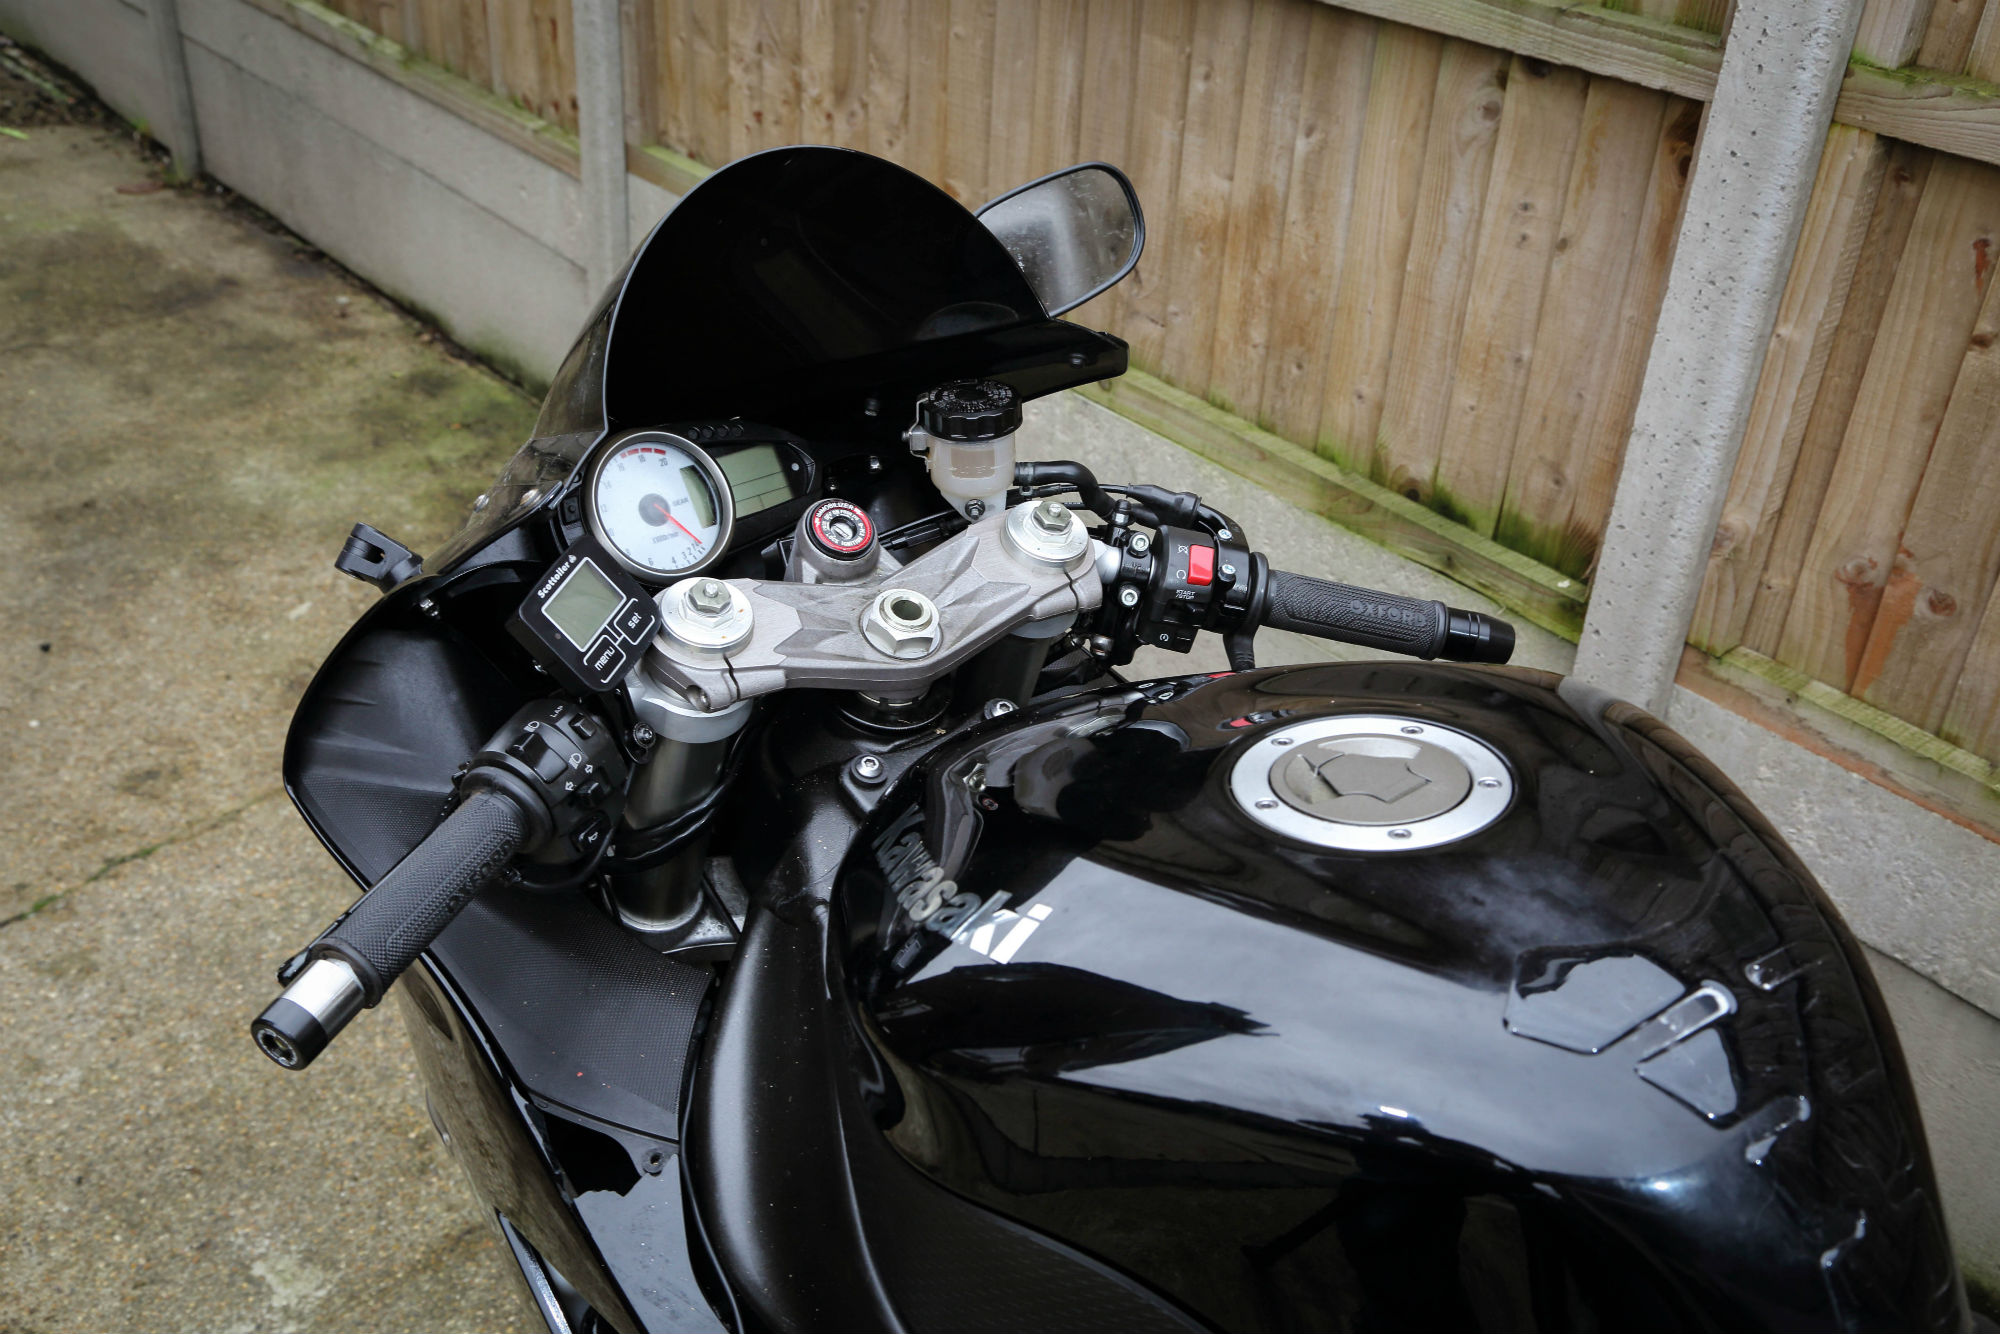 How to... fit new clip-on motorcycle handlebars